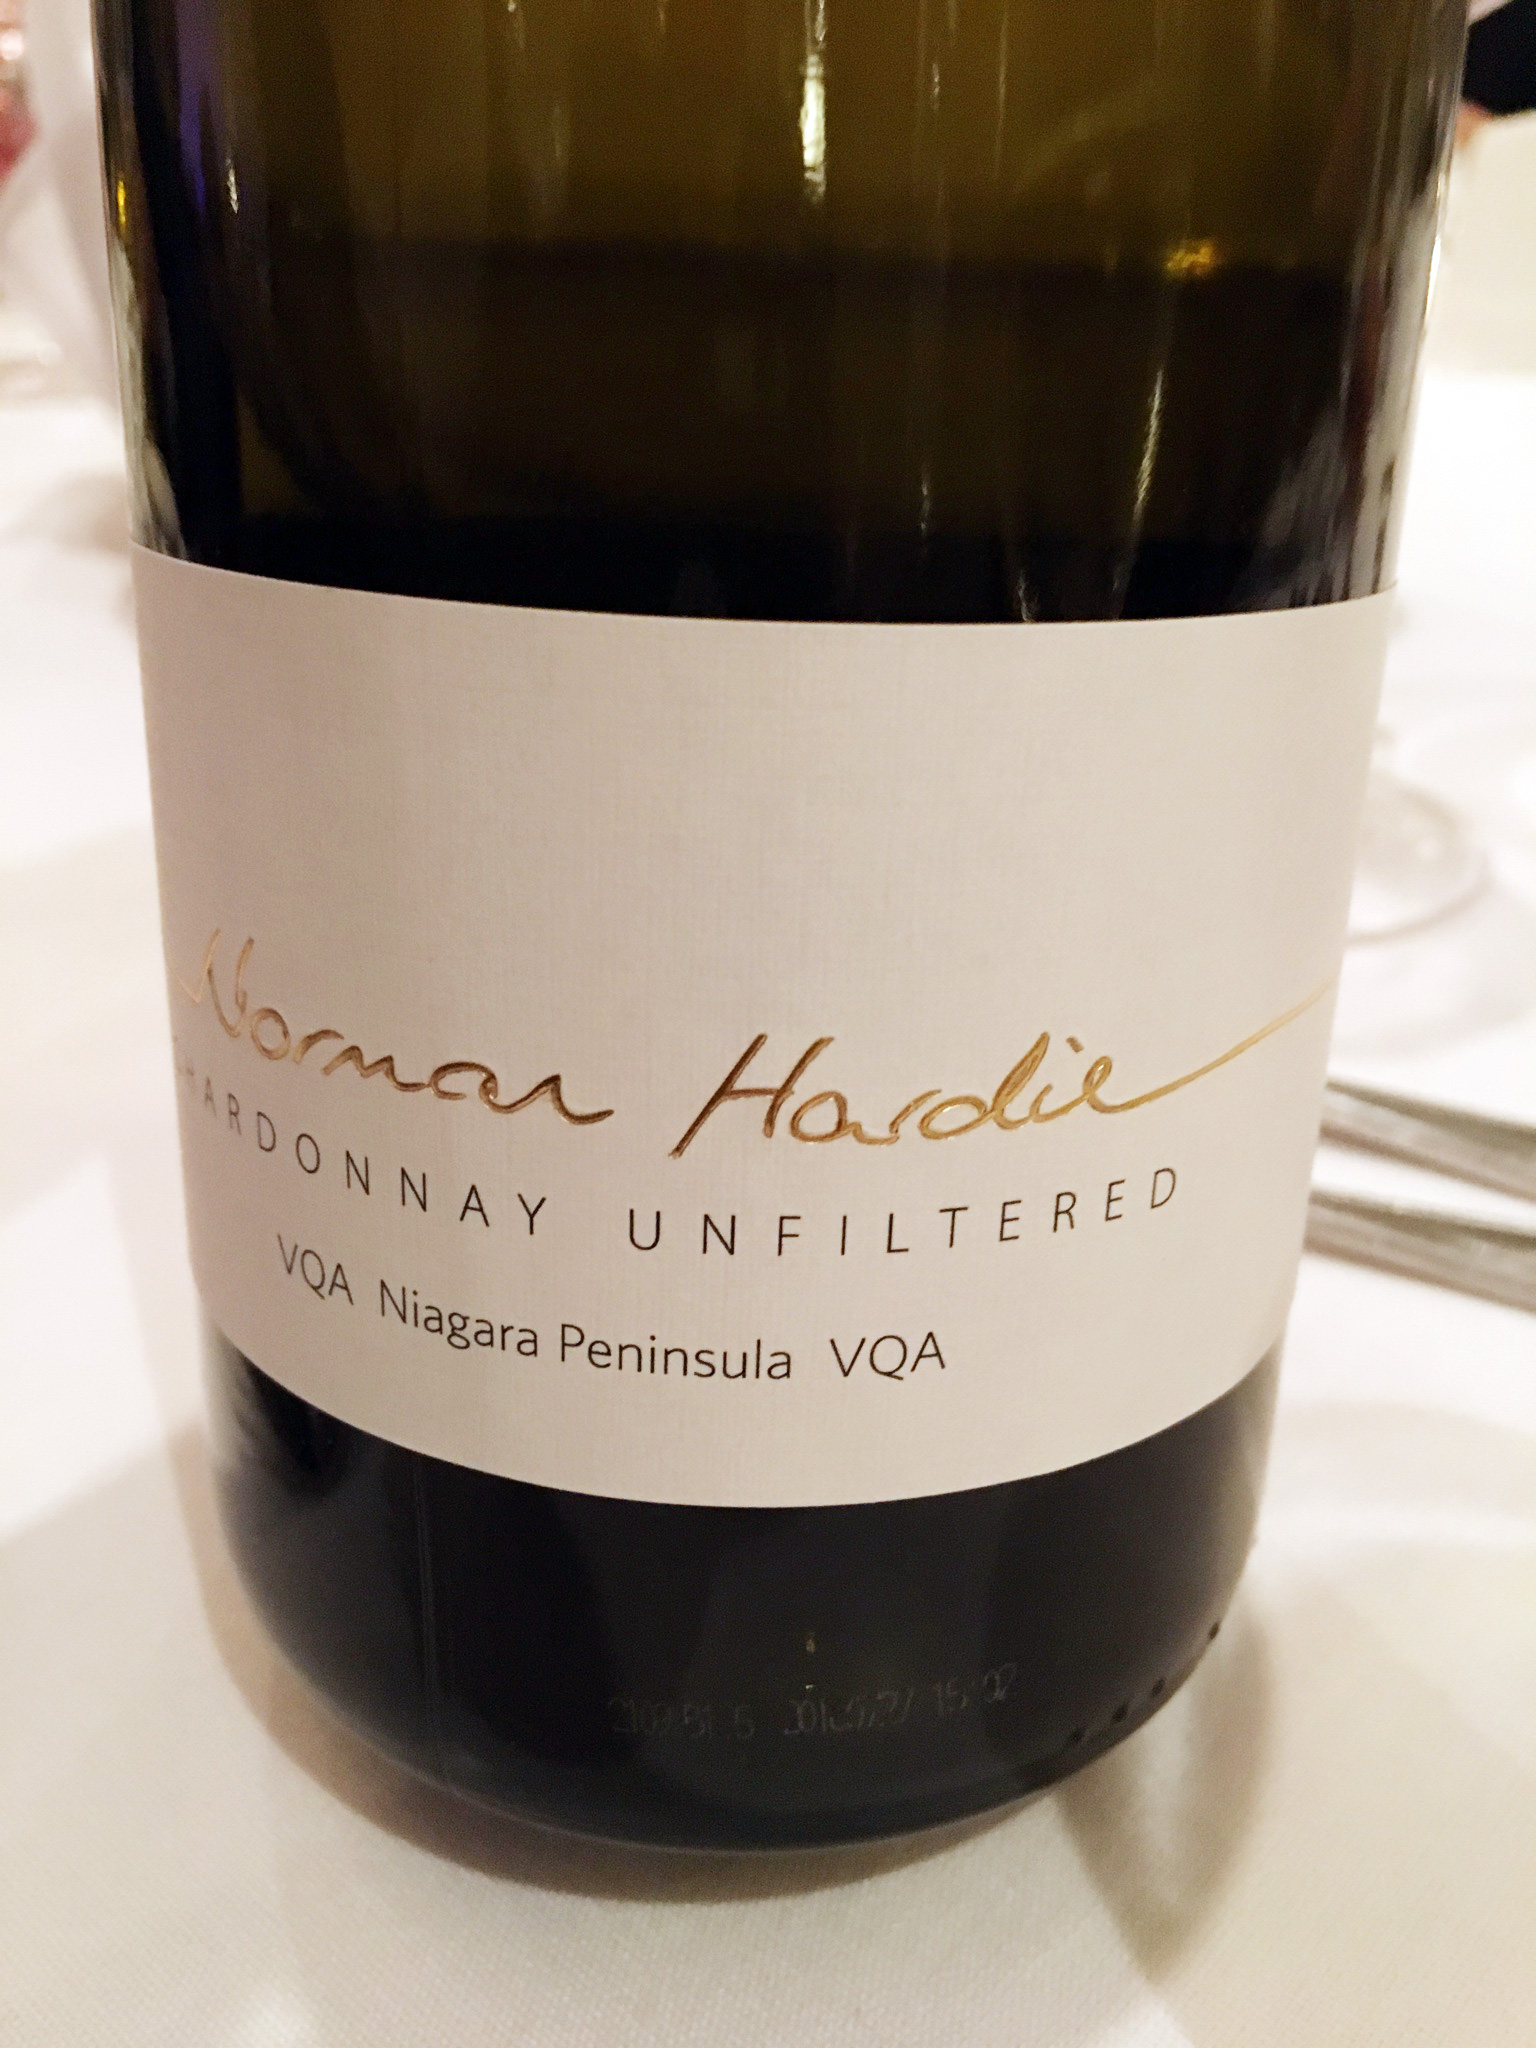 Norman Hardie Chardonnay Unfiltered